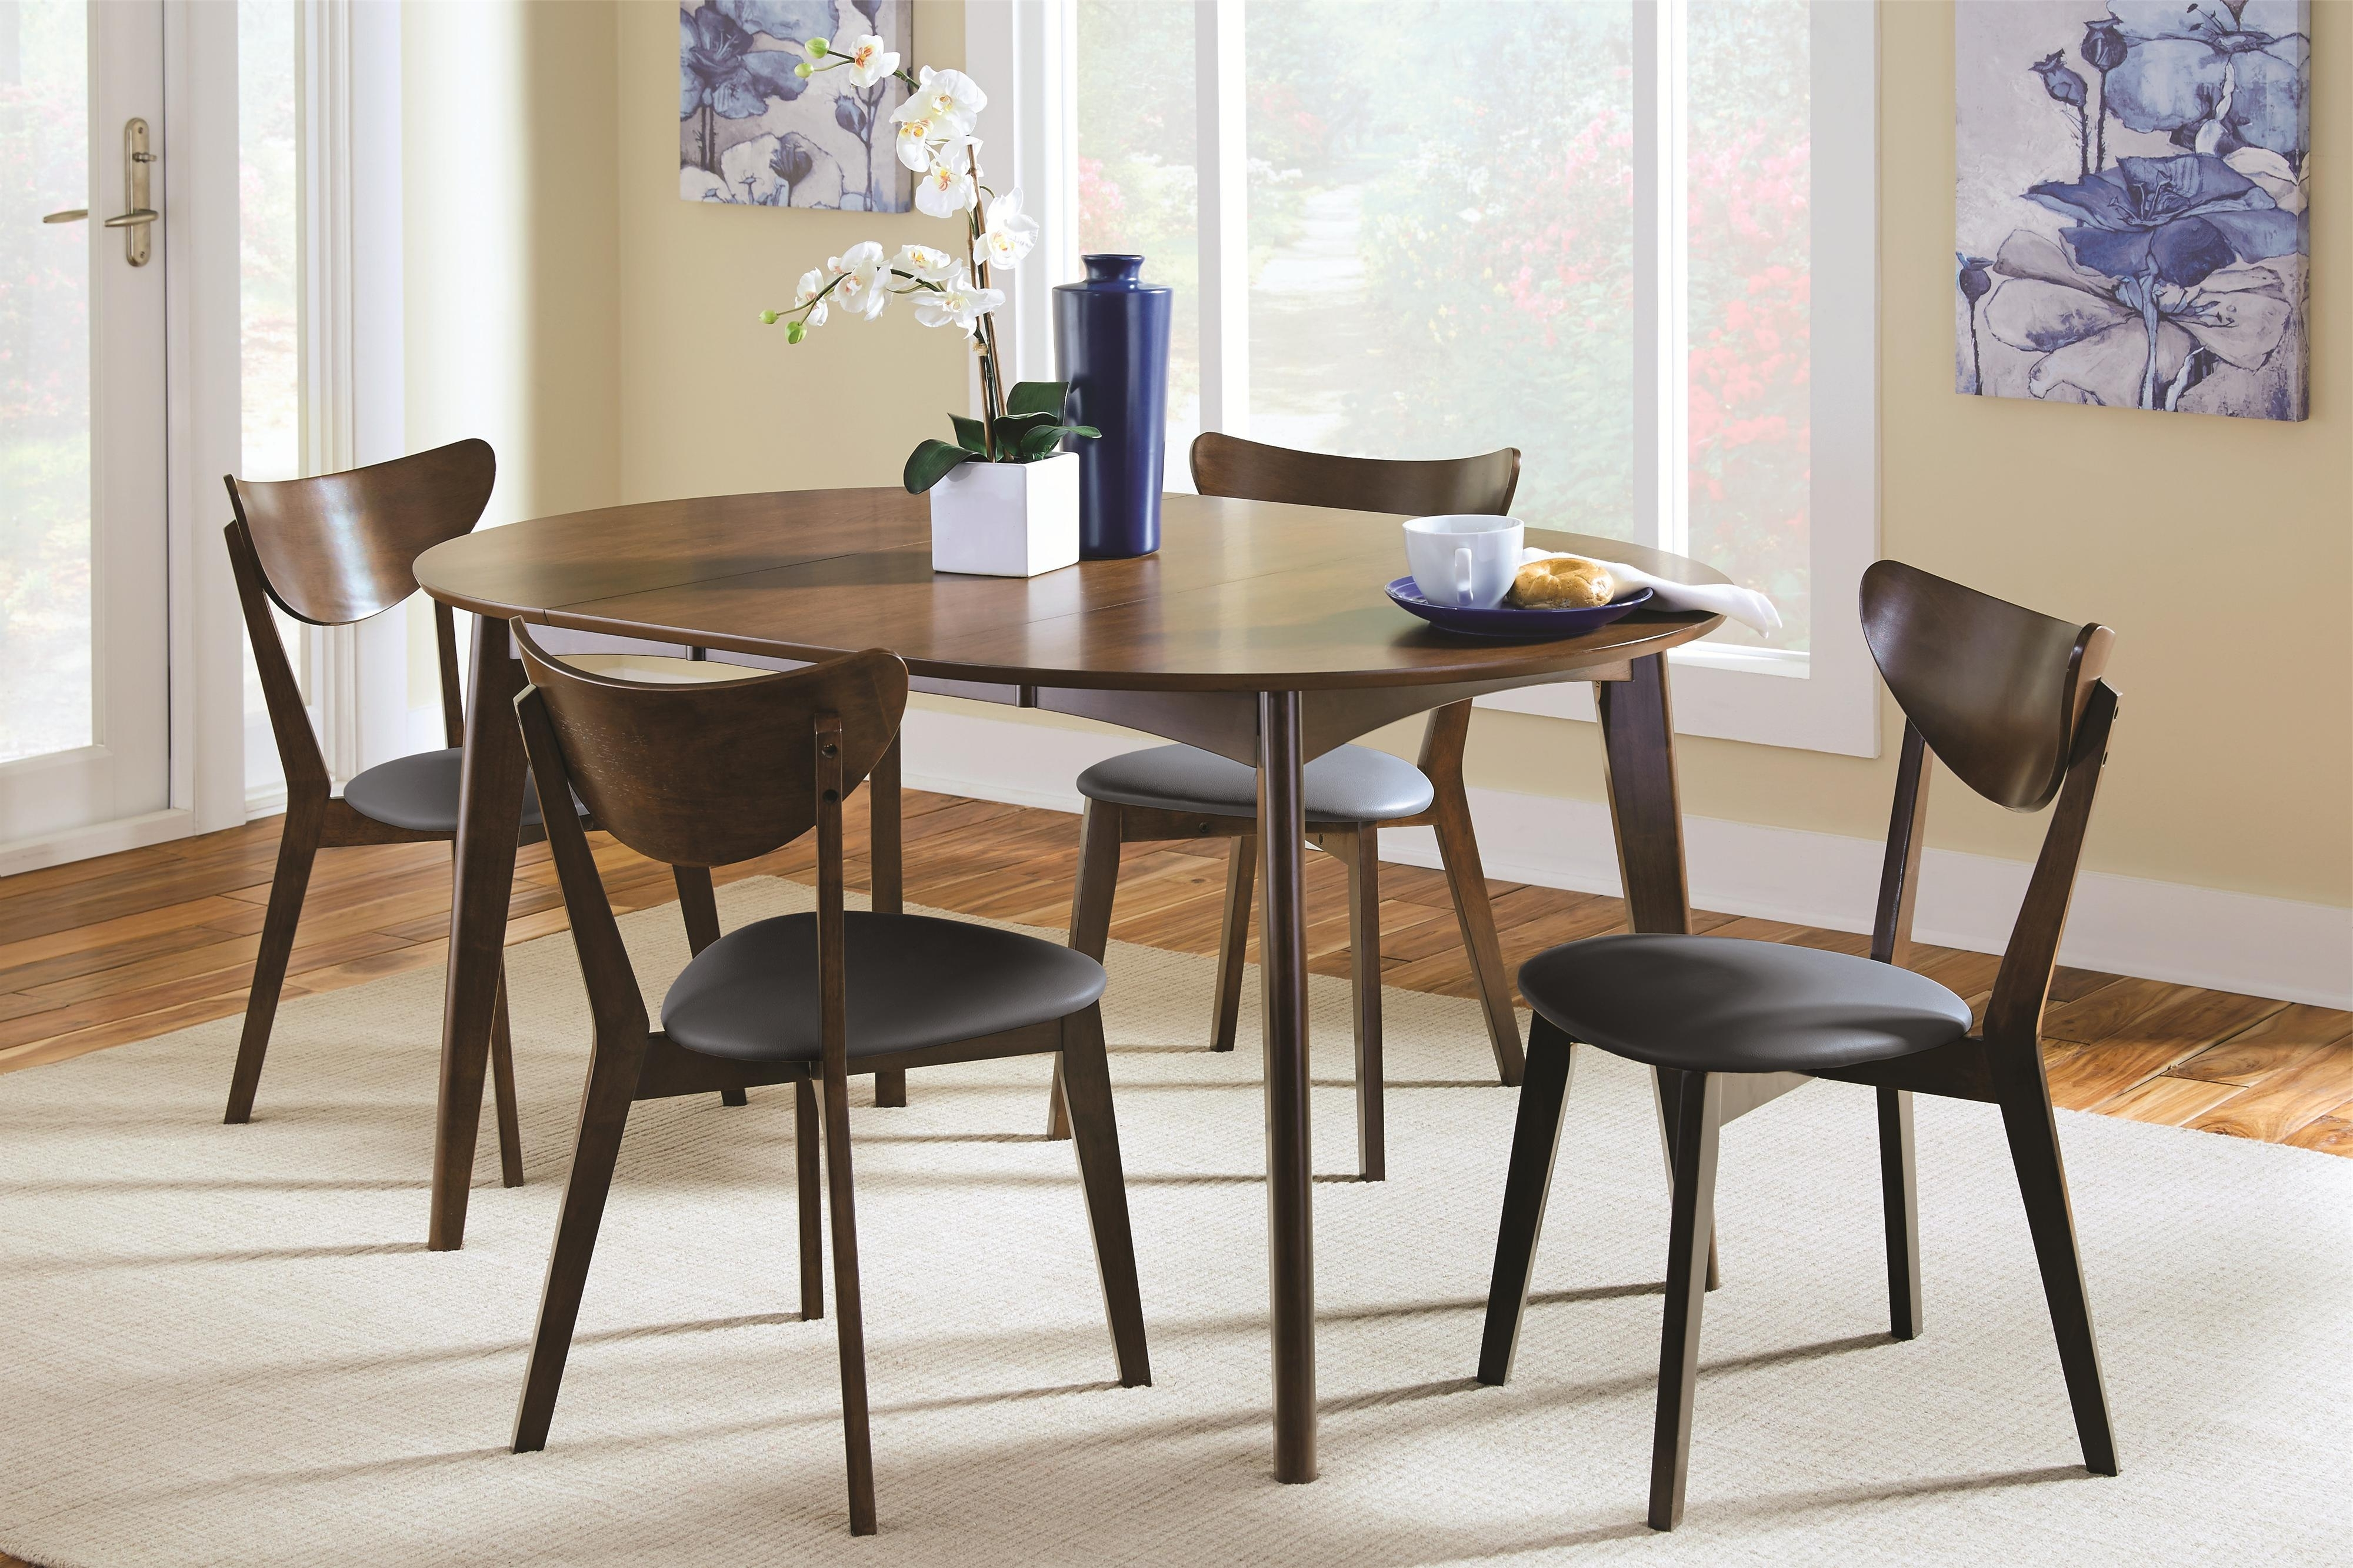 Coaster Malone Mid Century Modern 5 Piece Solid Wood Dining Set Within Most Popular Dining Sets (View 4 of 25)